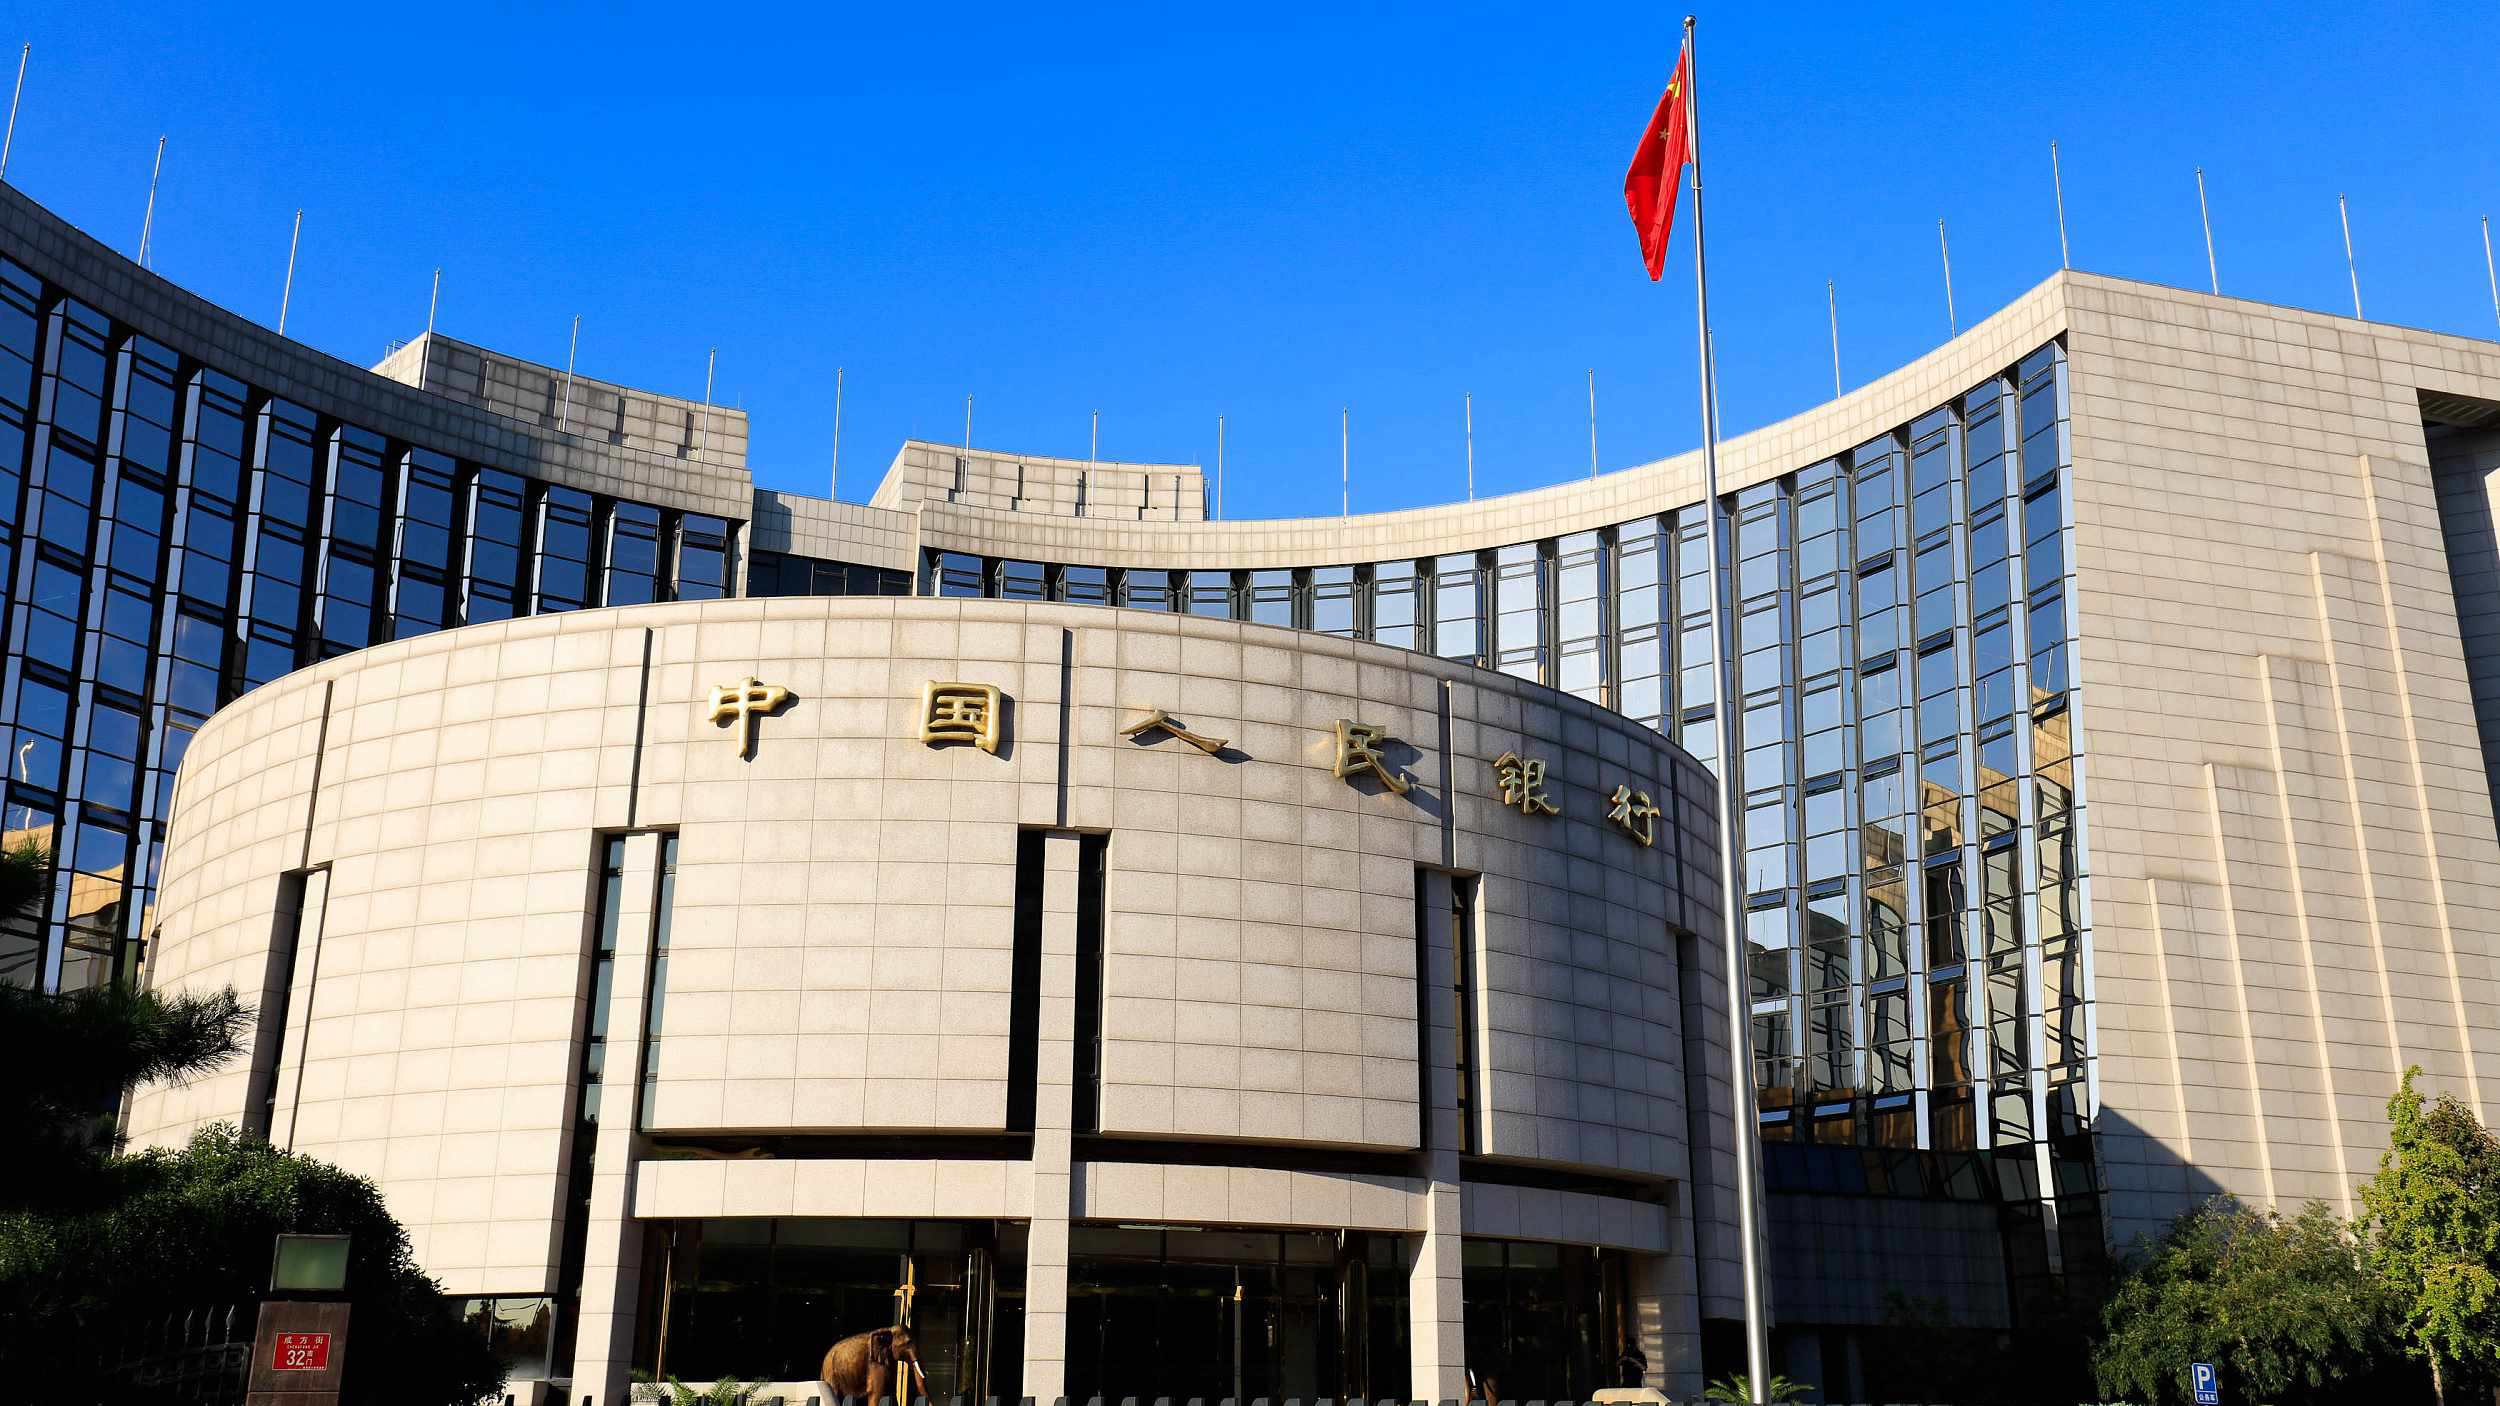 China central bank warns against illegal fund-raising with virtual currencies and blockchain firms